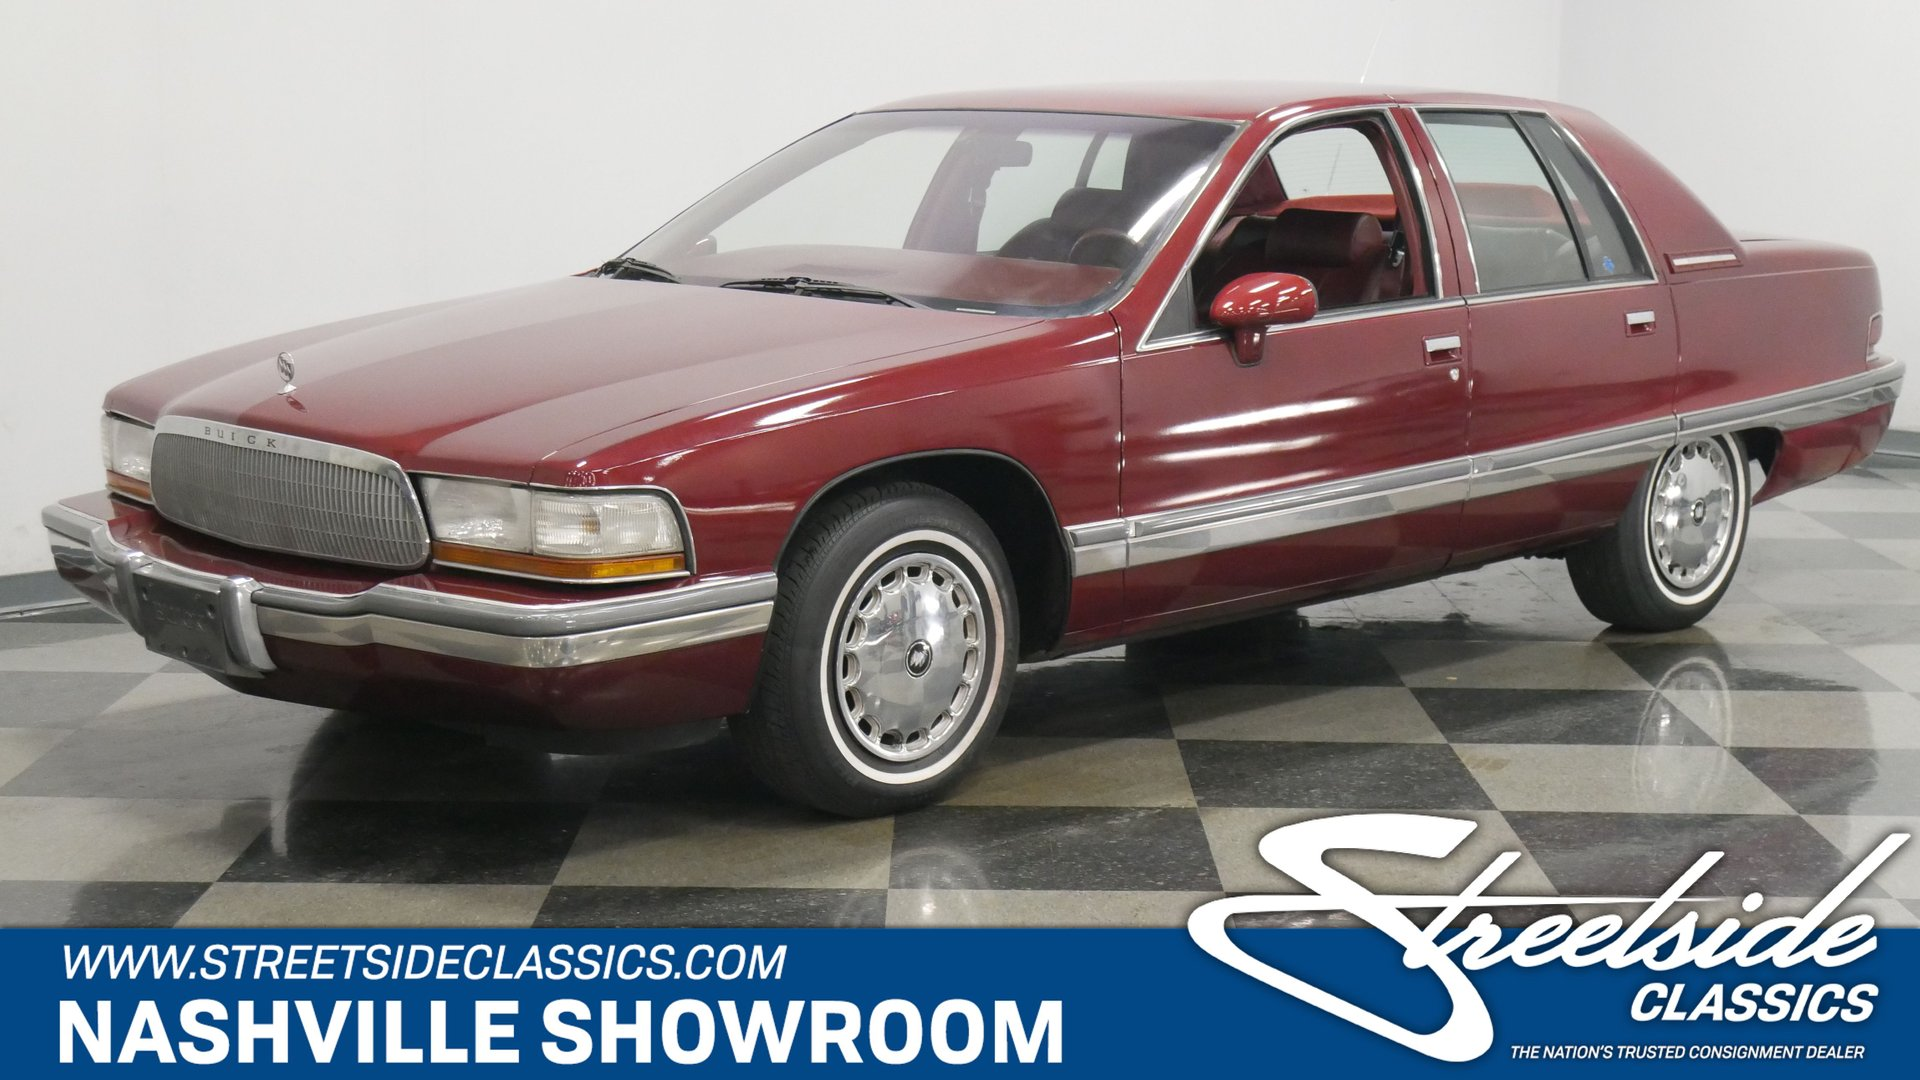 1992 buick roadmaster streetside classics the nation s trusted classic car consignment dealer 1992 buick roadmaster streetside